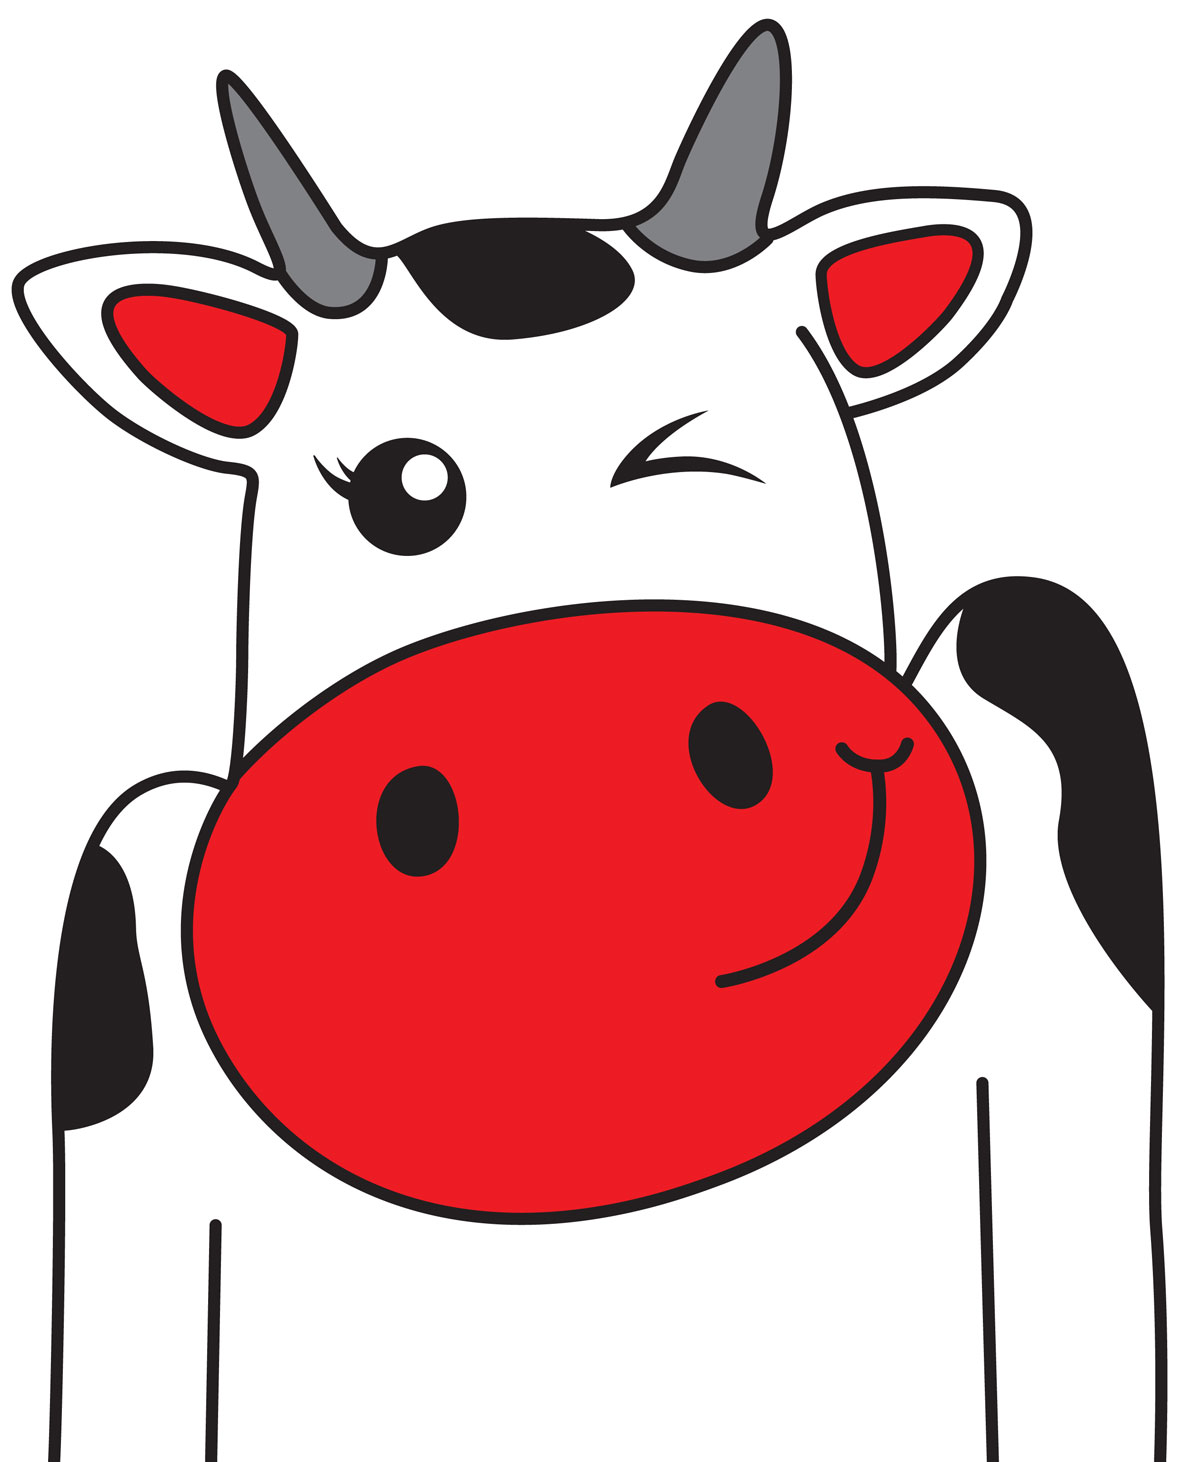 cow-sticker-01_tcm16-81935